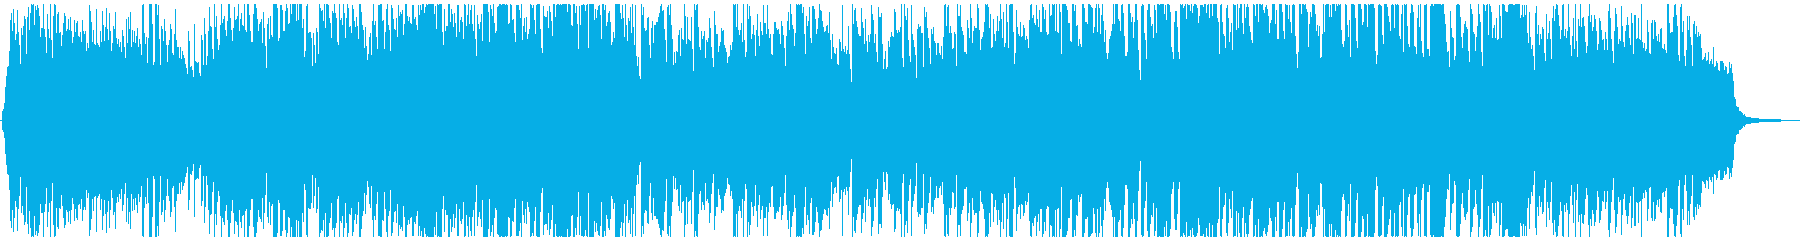 Cheerful and bright cute anime POP's reproduced waveform